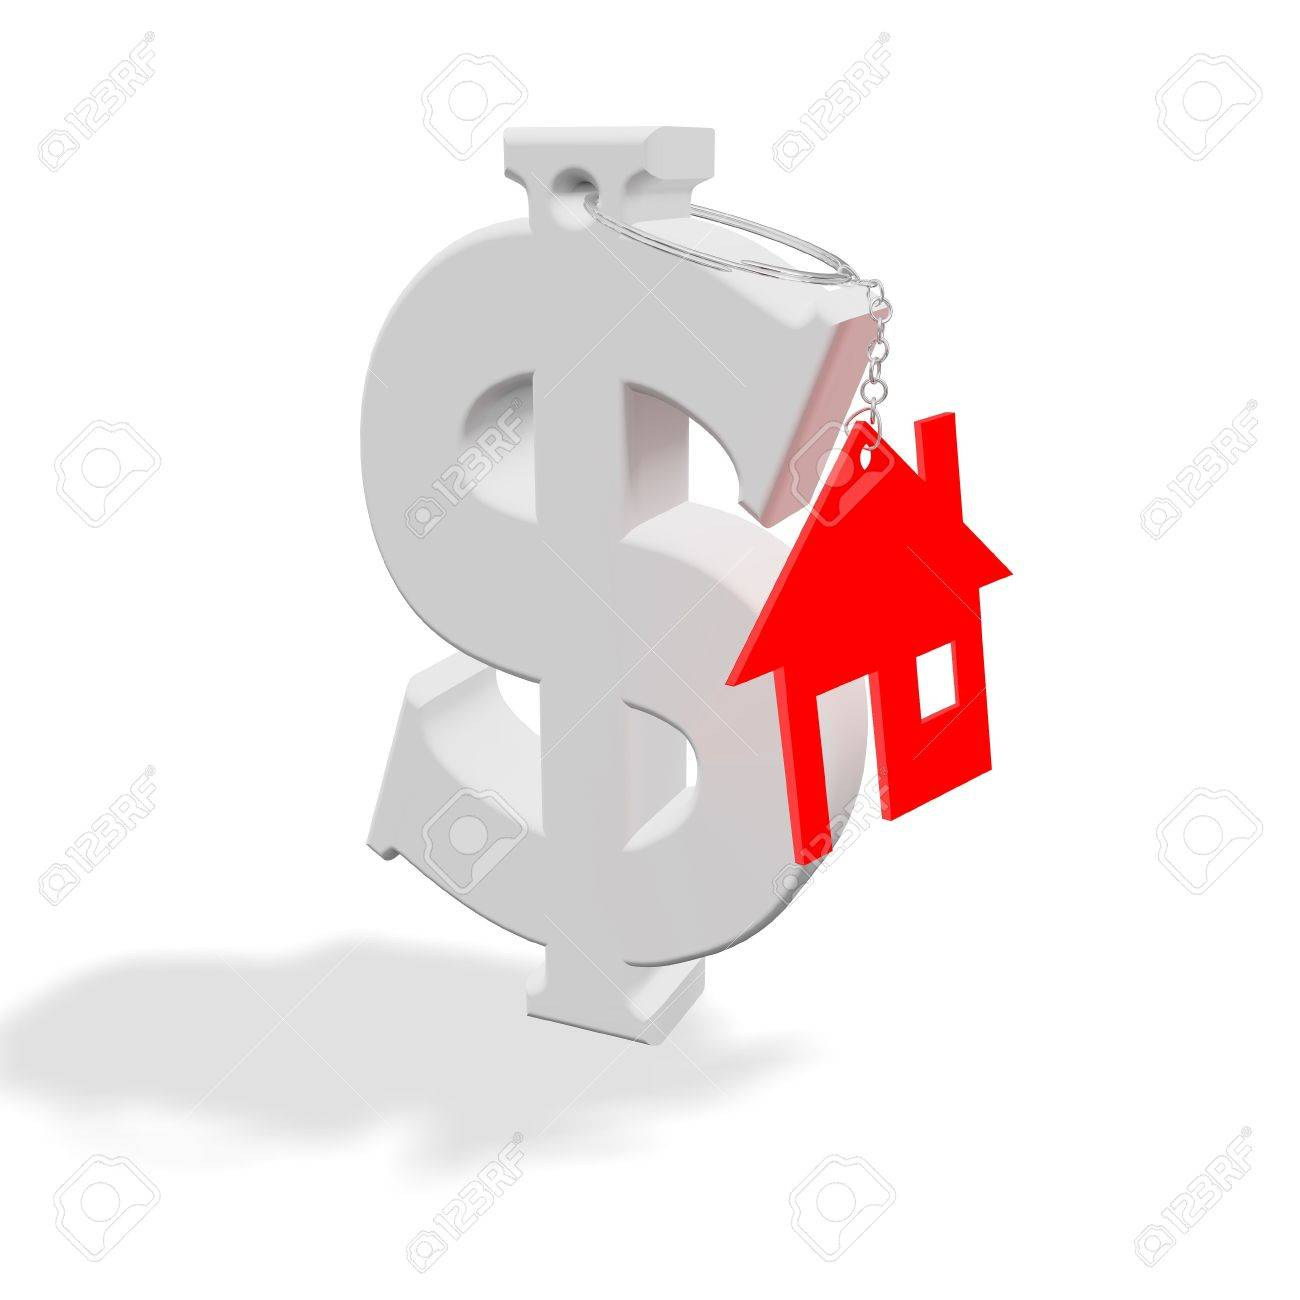 Abstract conceptual representation of property, housing, finance and real estate matters. Stock Photo - 6359744